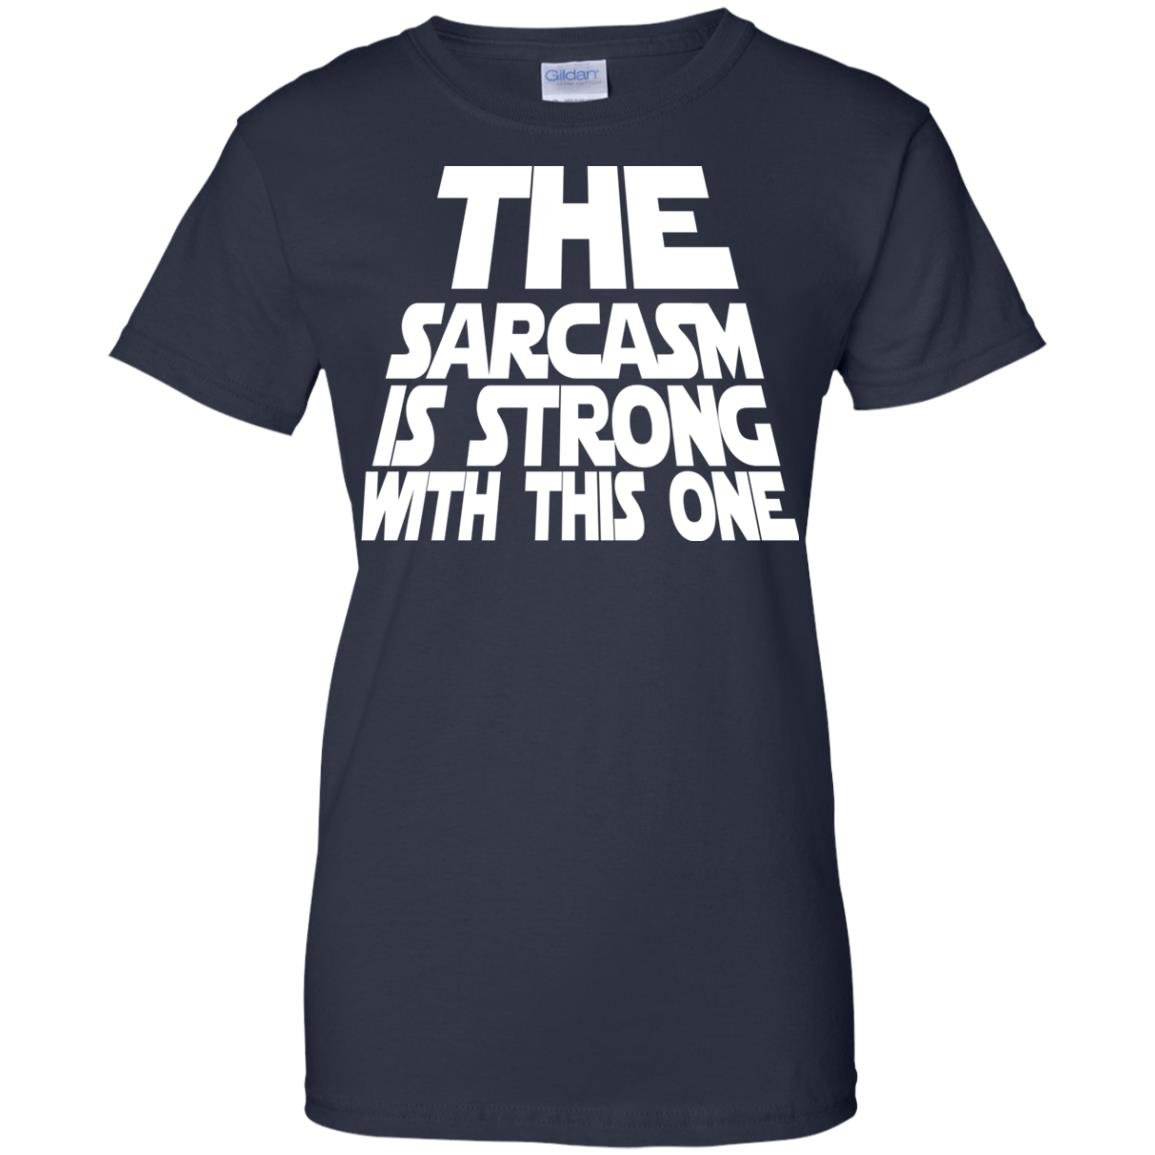 image 1803 - The Sarcasm is strong with this one shirt